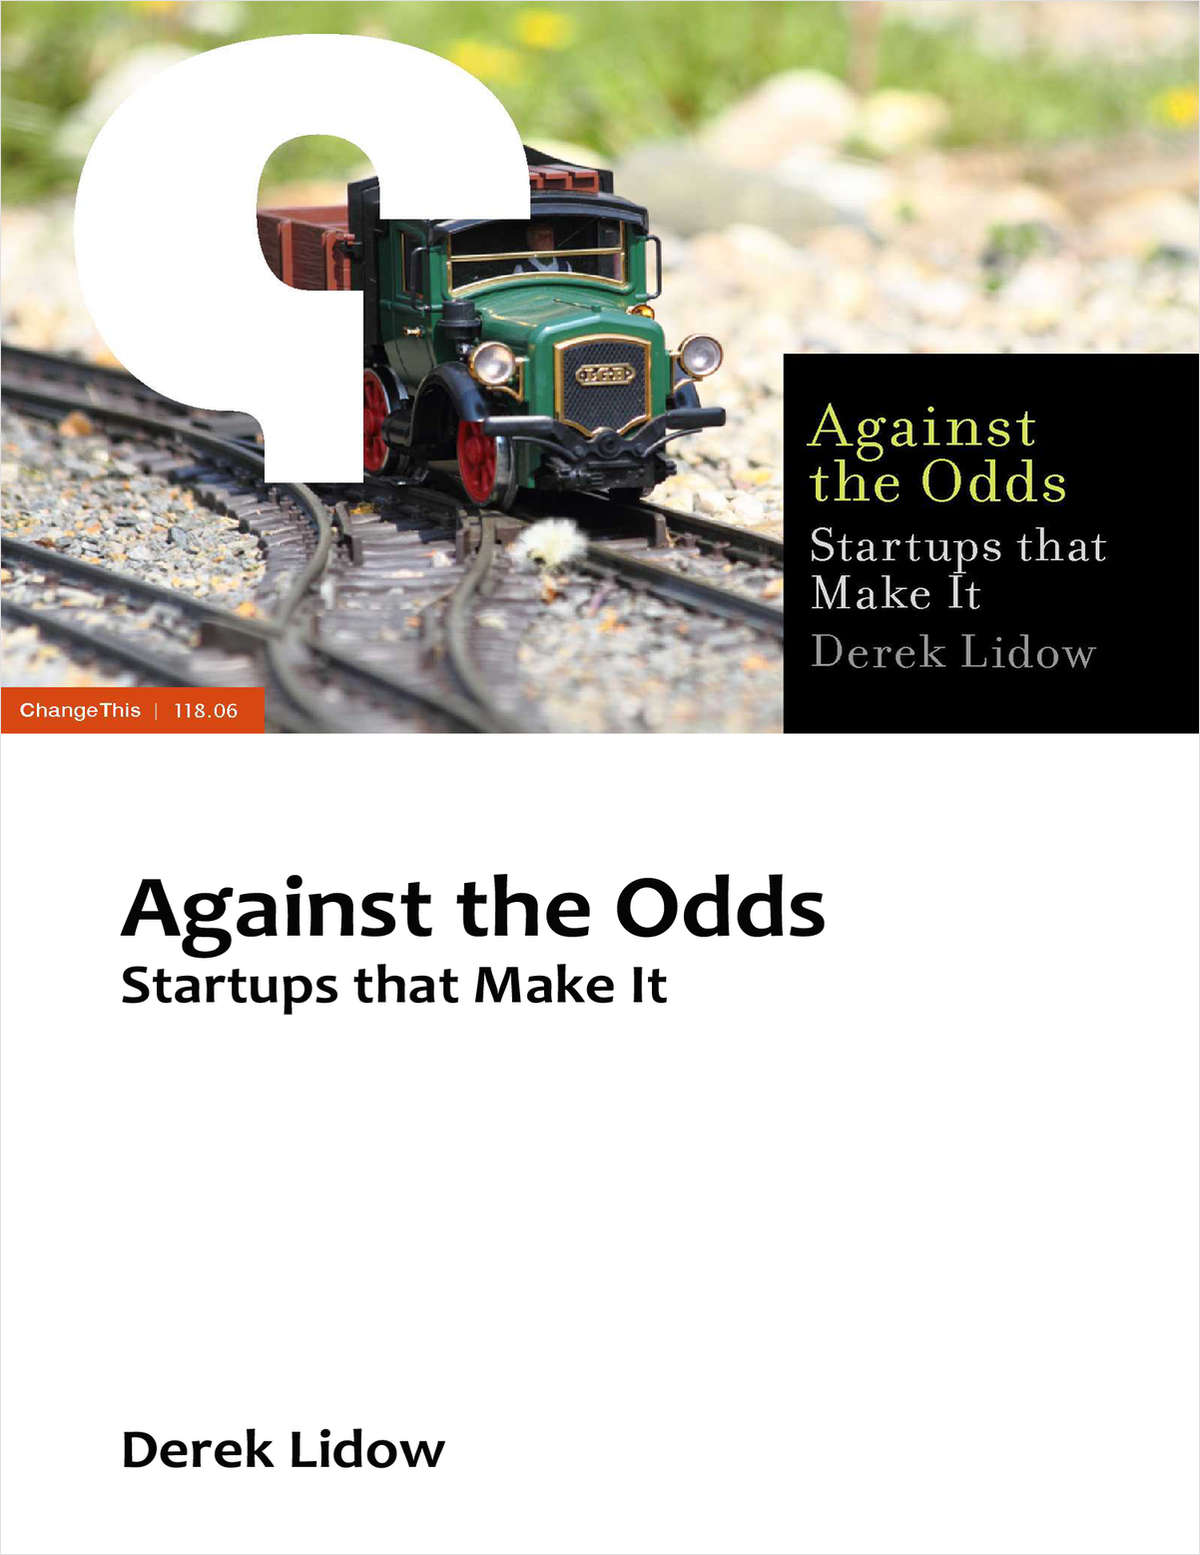 Against the Odds: Startups that Make It